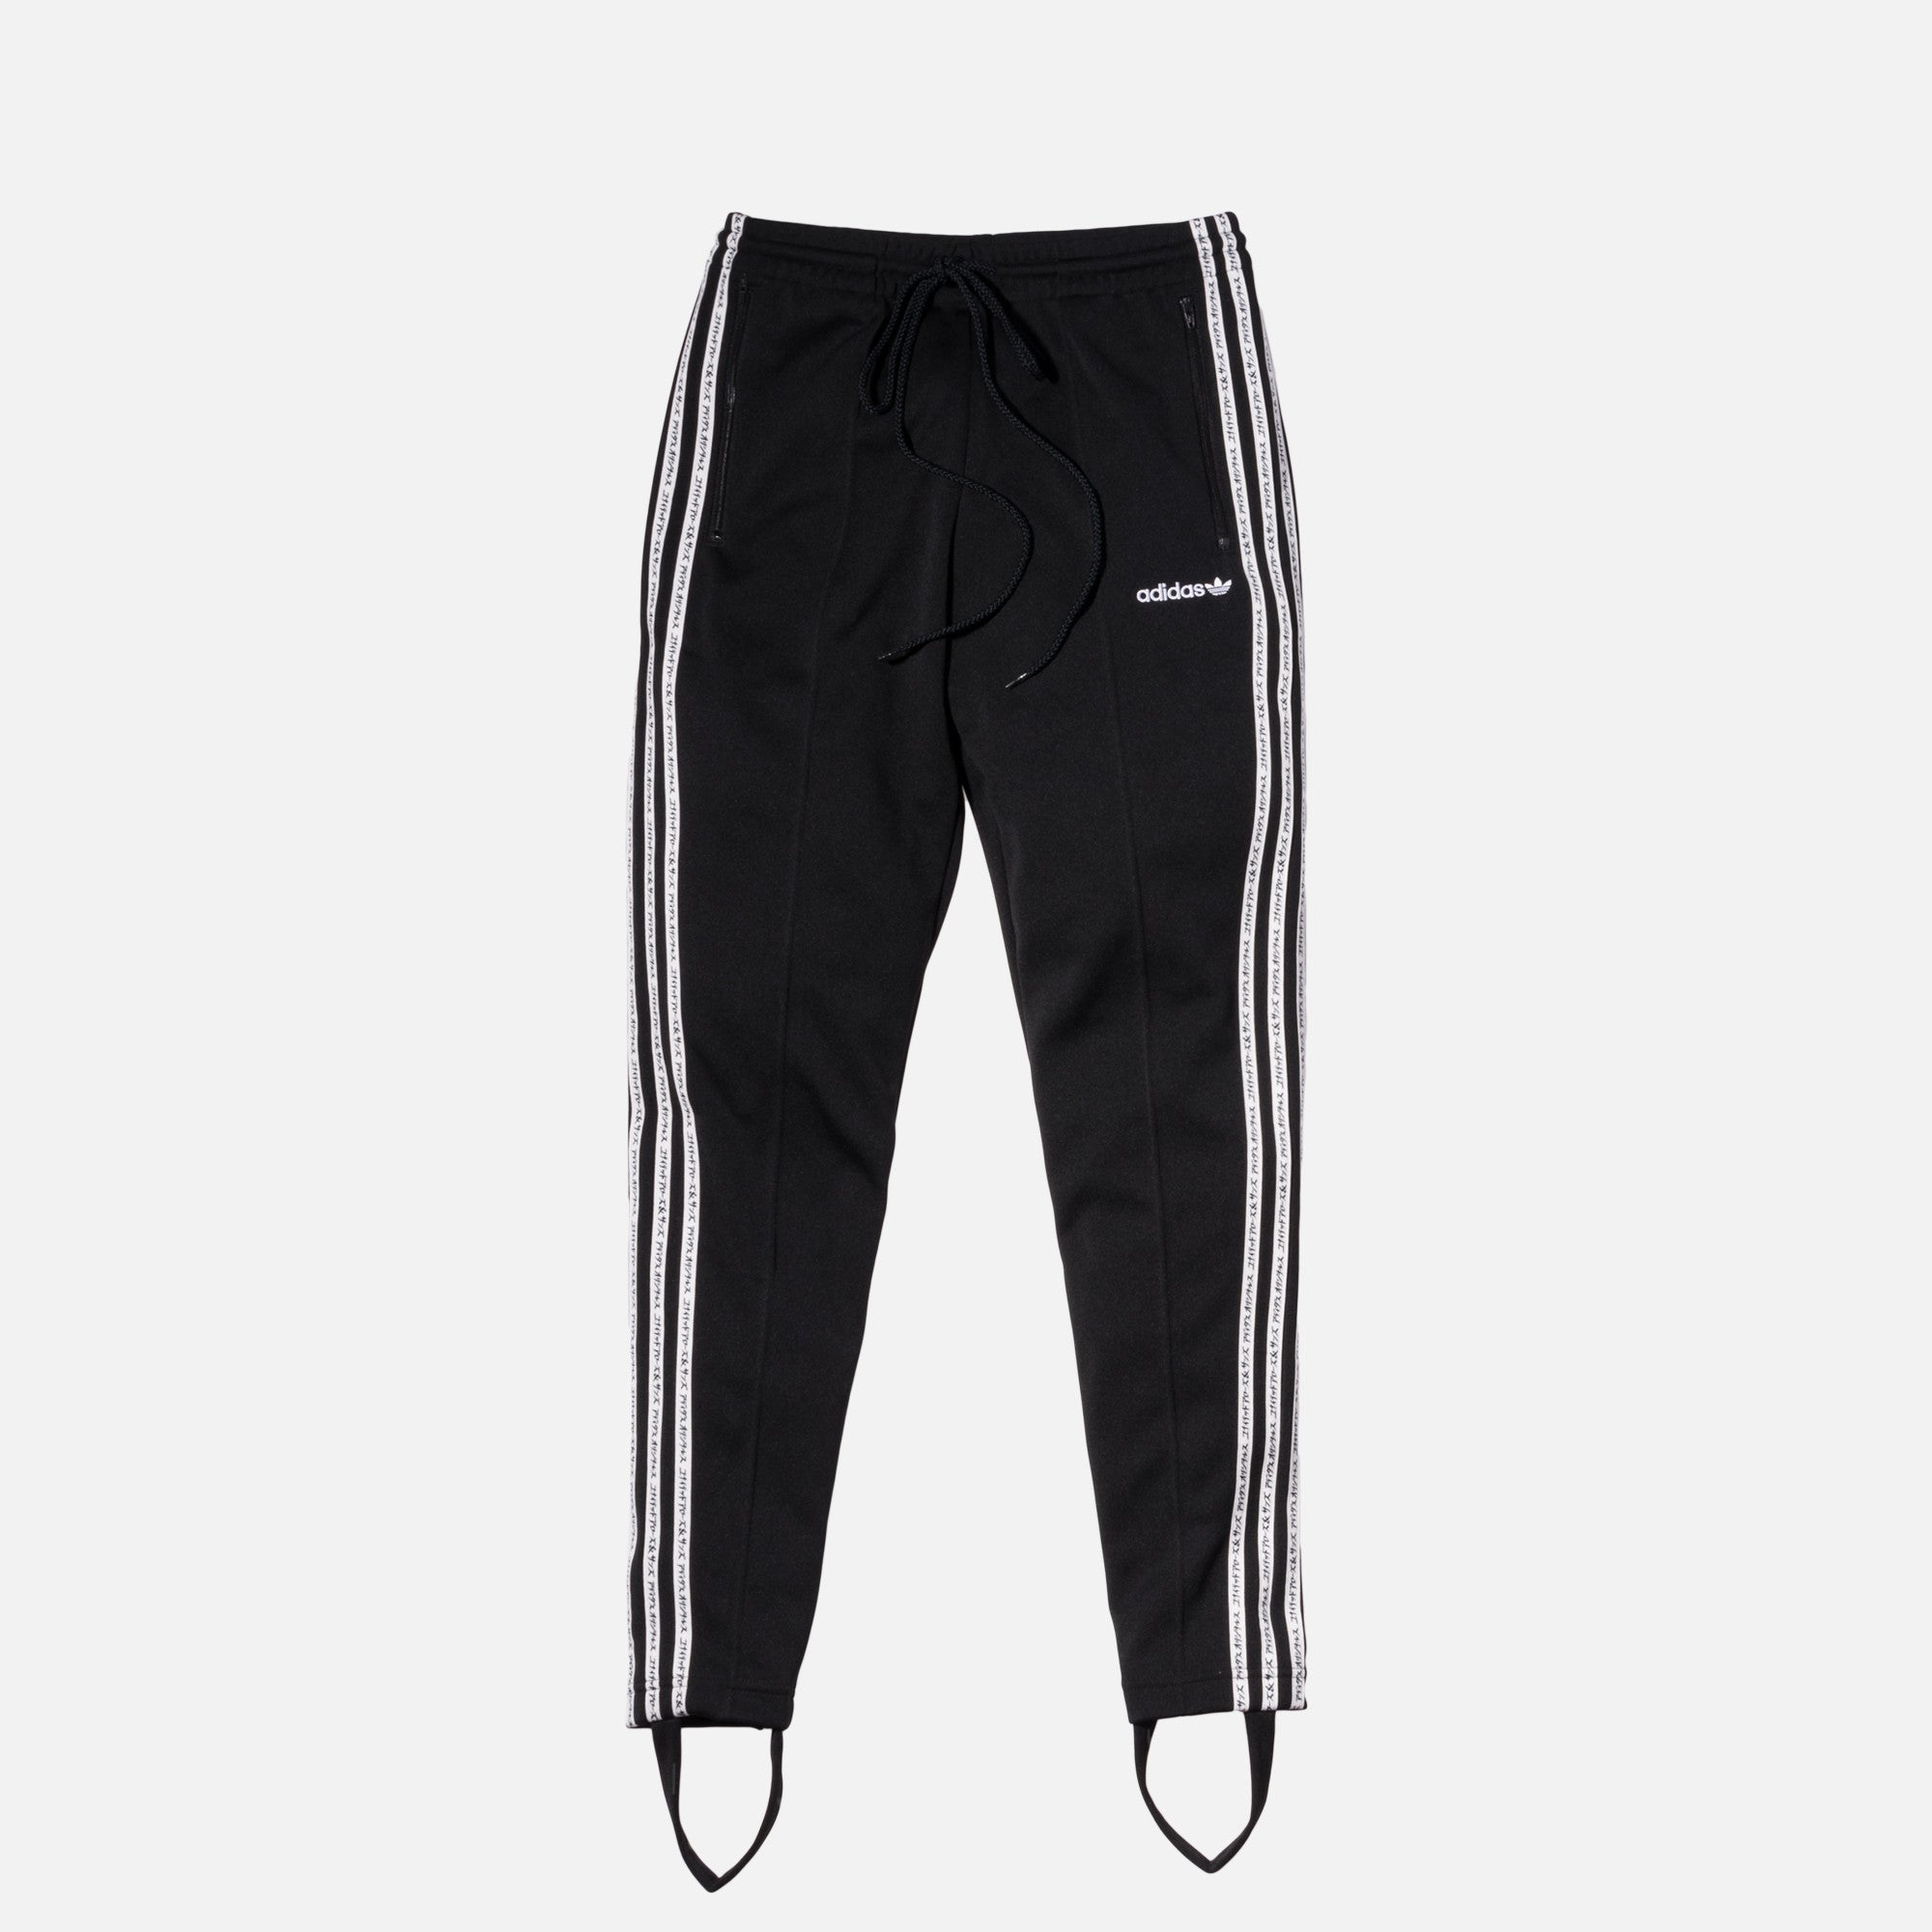 adidas Originals x United Arrows & Sons Track Suit - Black